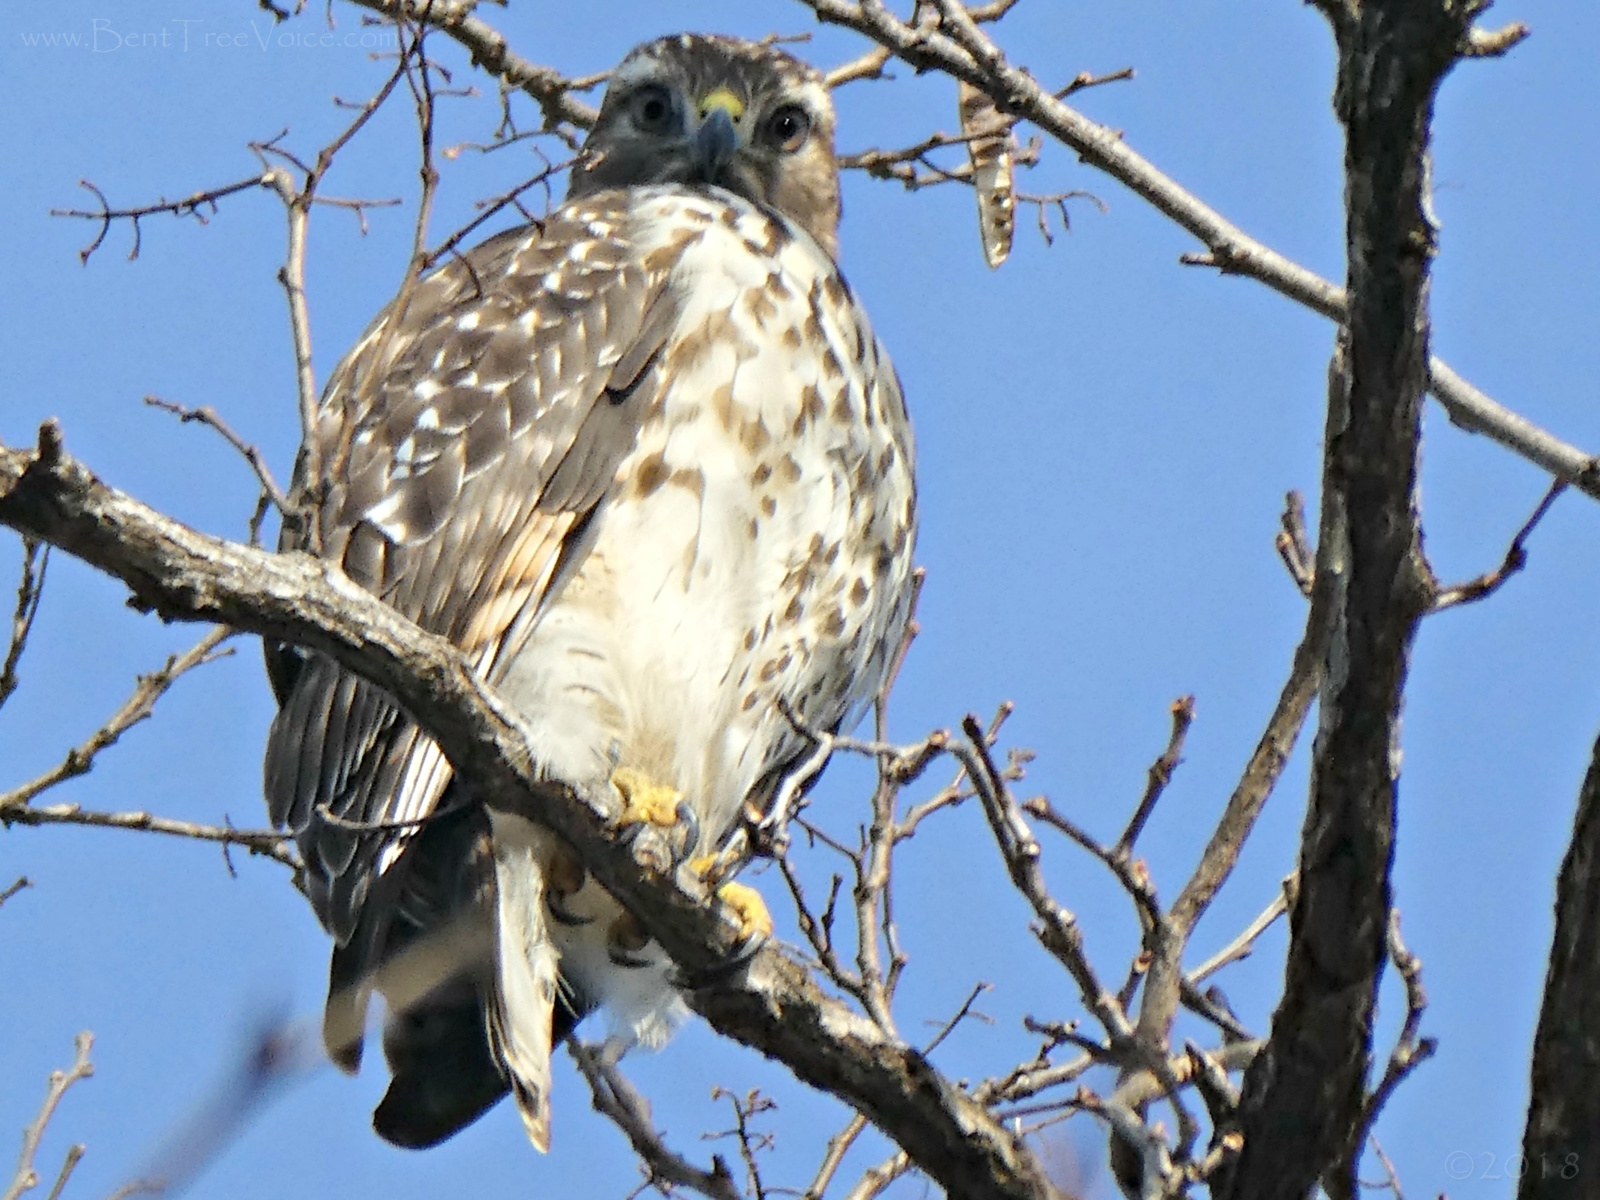 November 26, 2018 - Hawk at the Quarry in Bent Tree